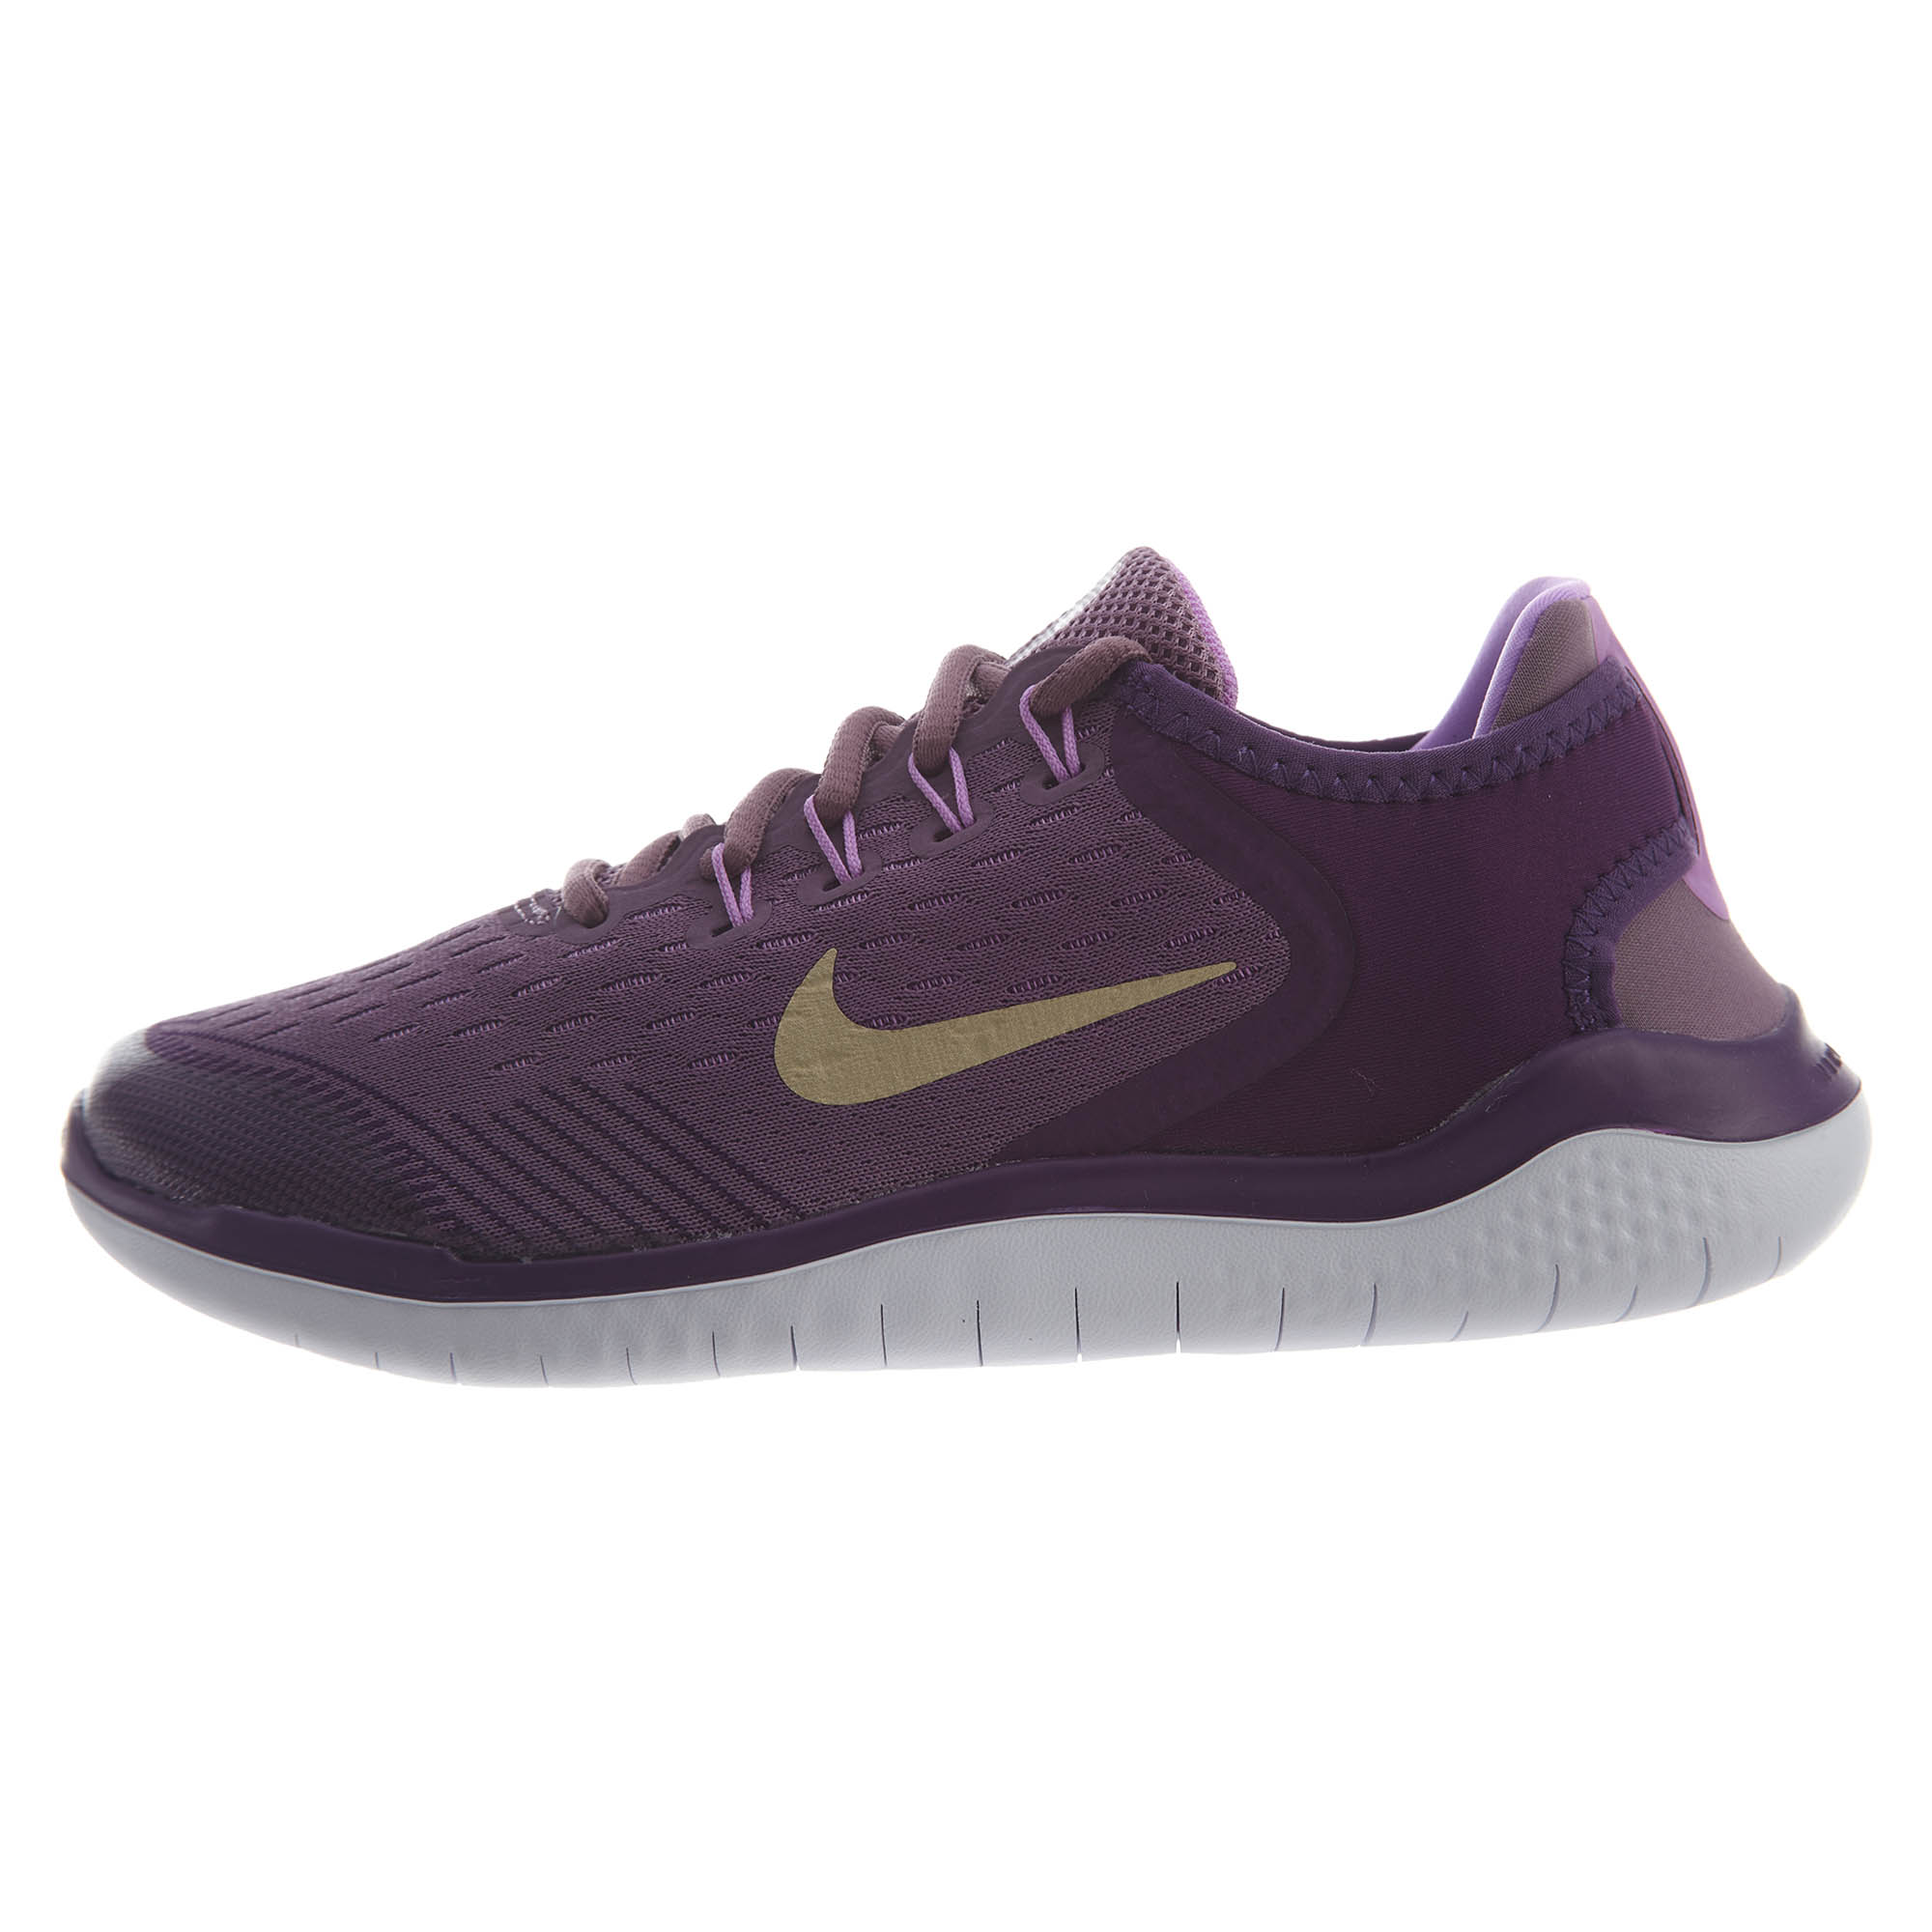 5f6904fc9181 Details about Nike Big Kids Free RN 2018 Running Shoes AH3457-500